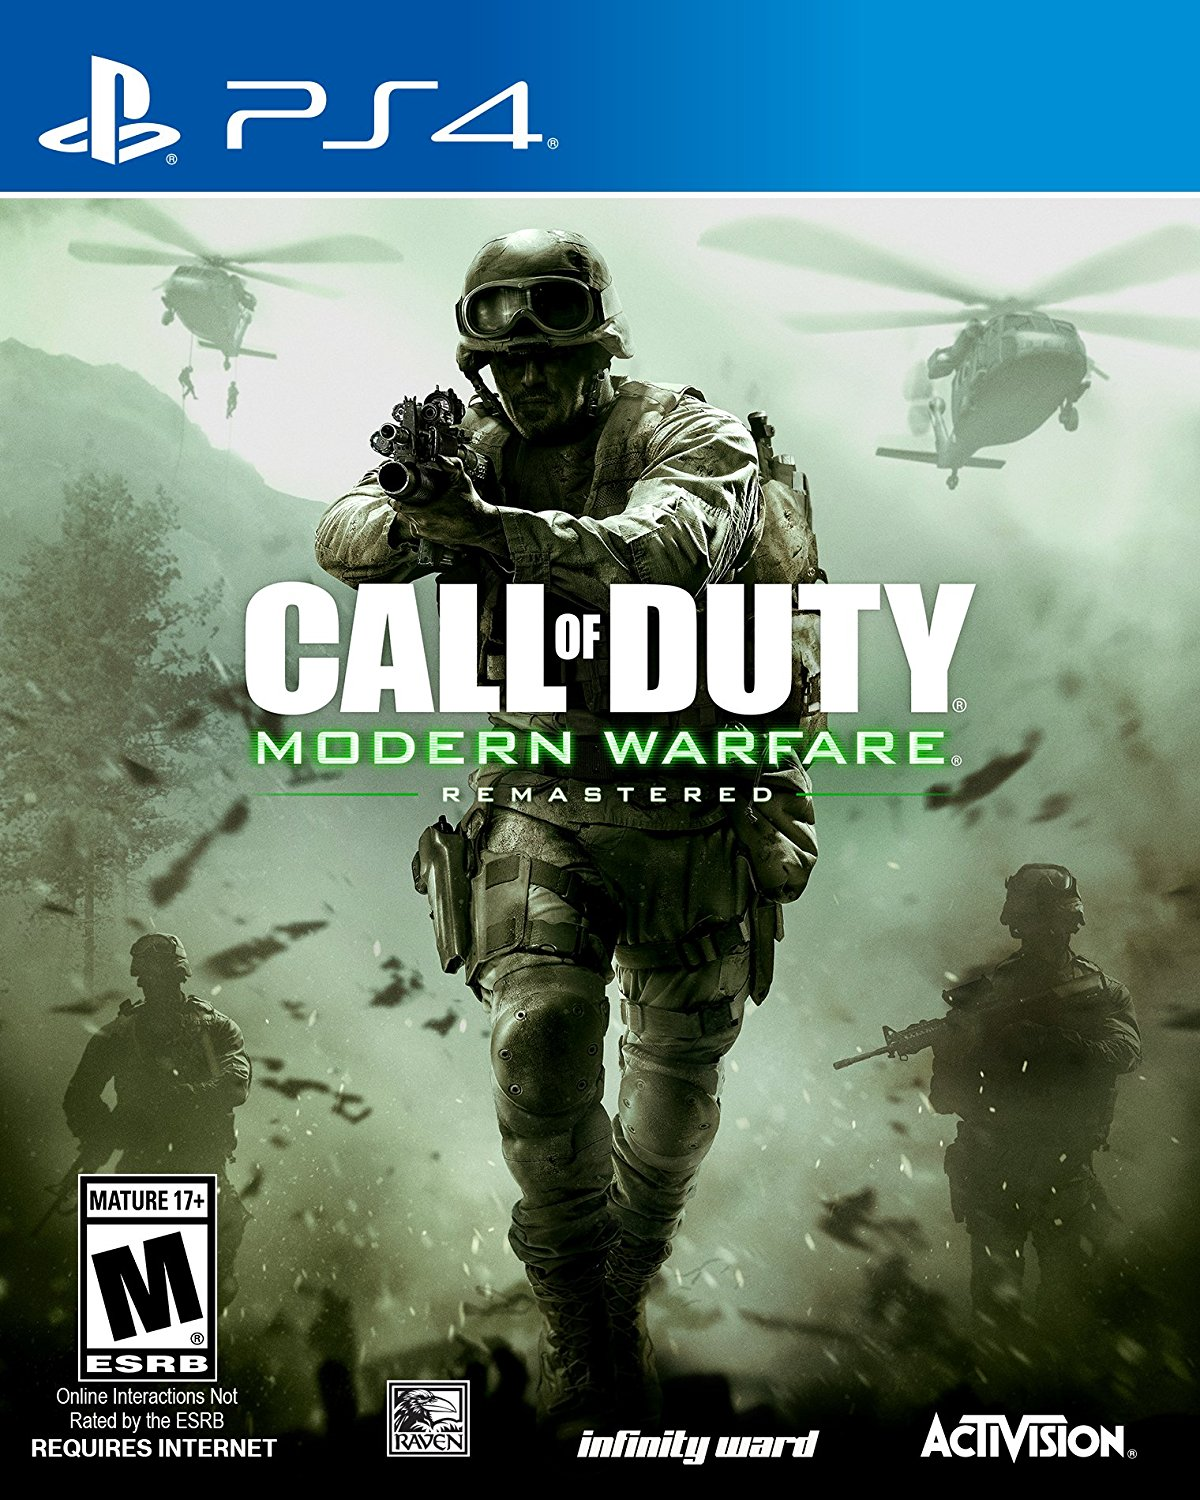 PS4 COD Call of Duty Modern Warfare Remastered